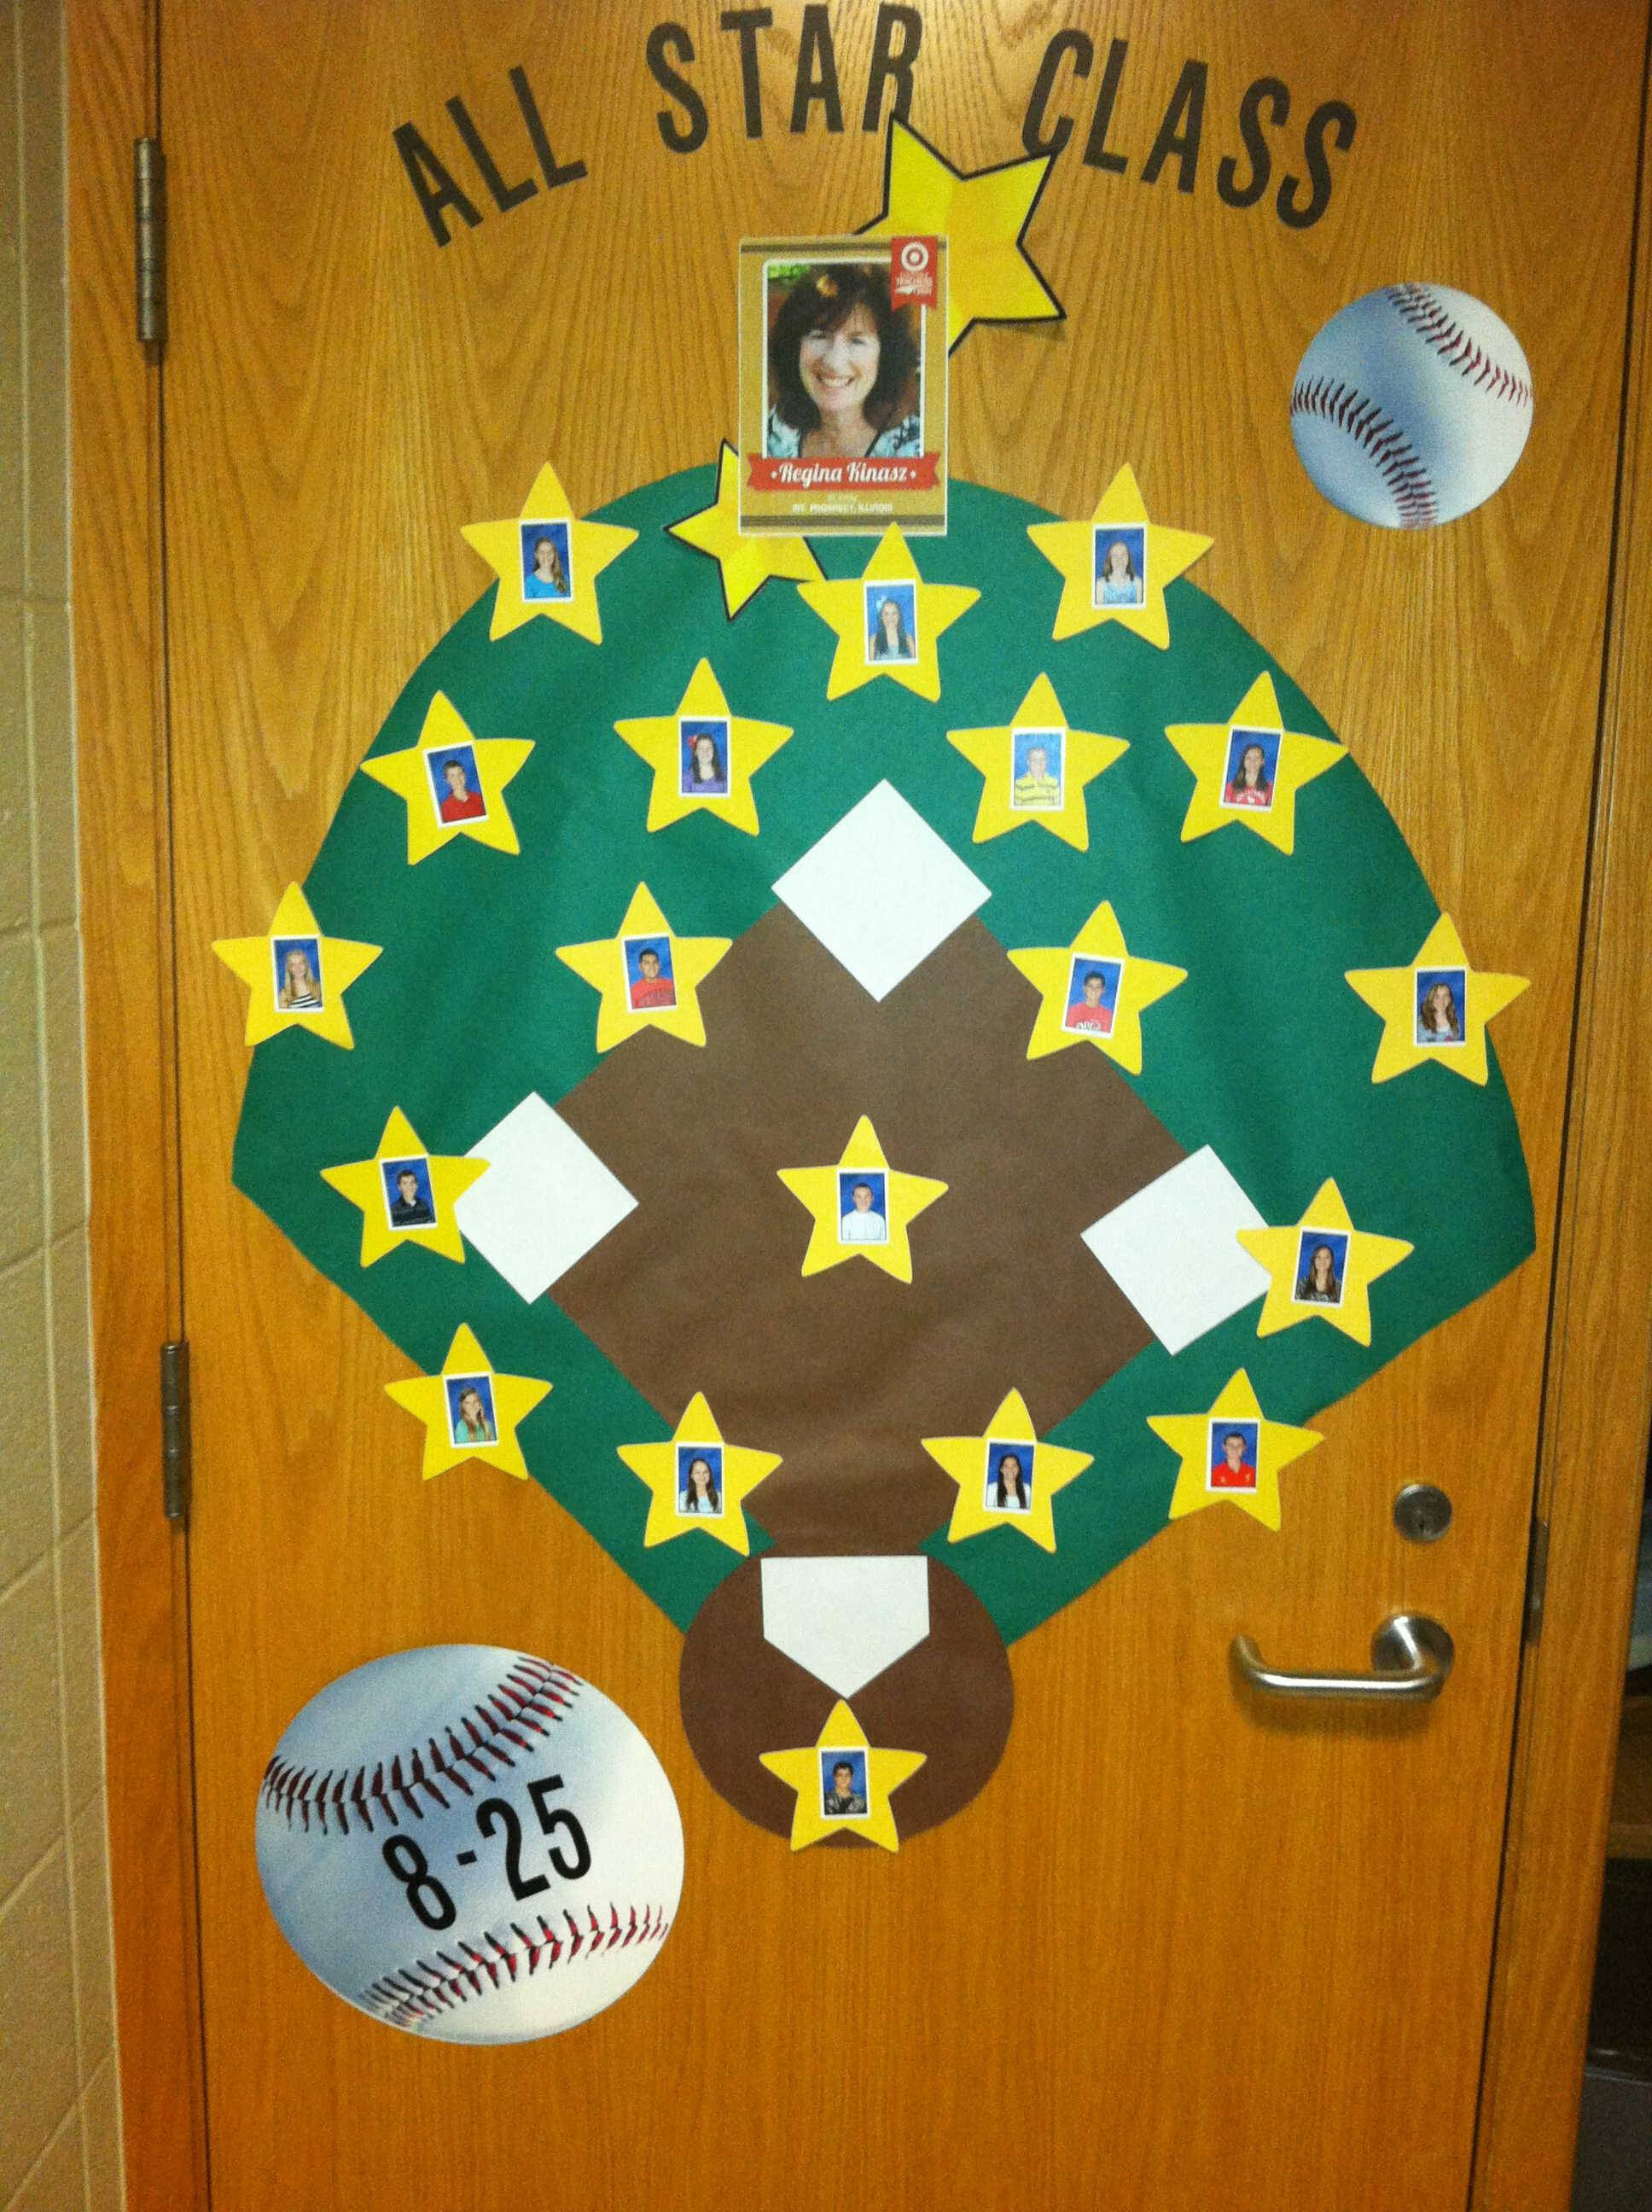 For the start of the new school year, Regina Kinasz made all her homeroom students stars. Kinasz was named one of 30 All-Star teachers at the Major League Baseball All-Star game.